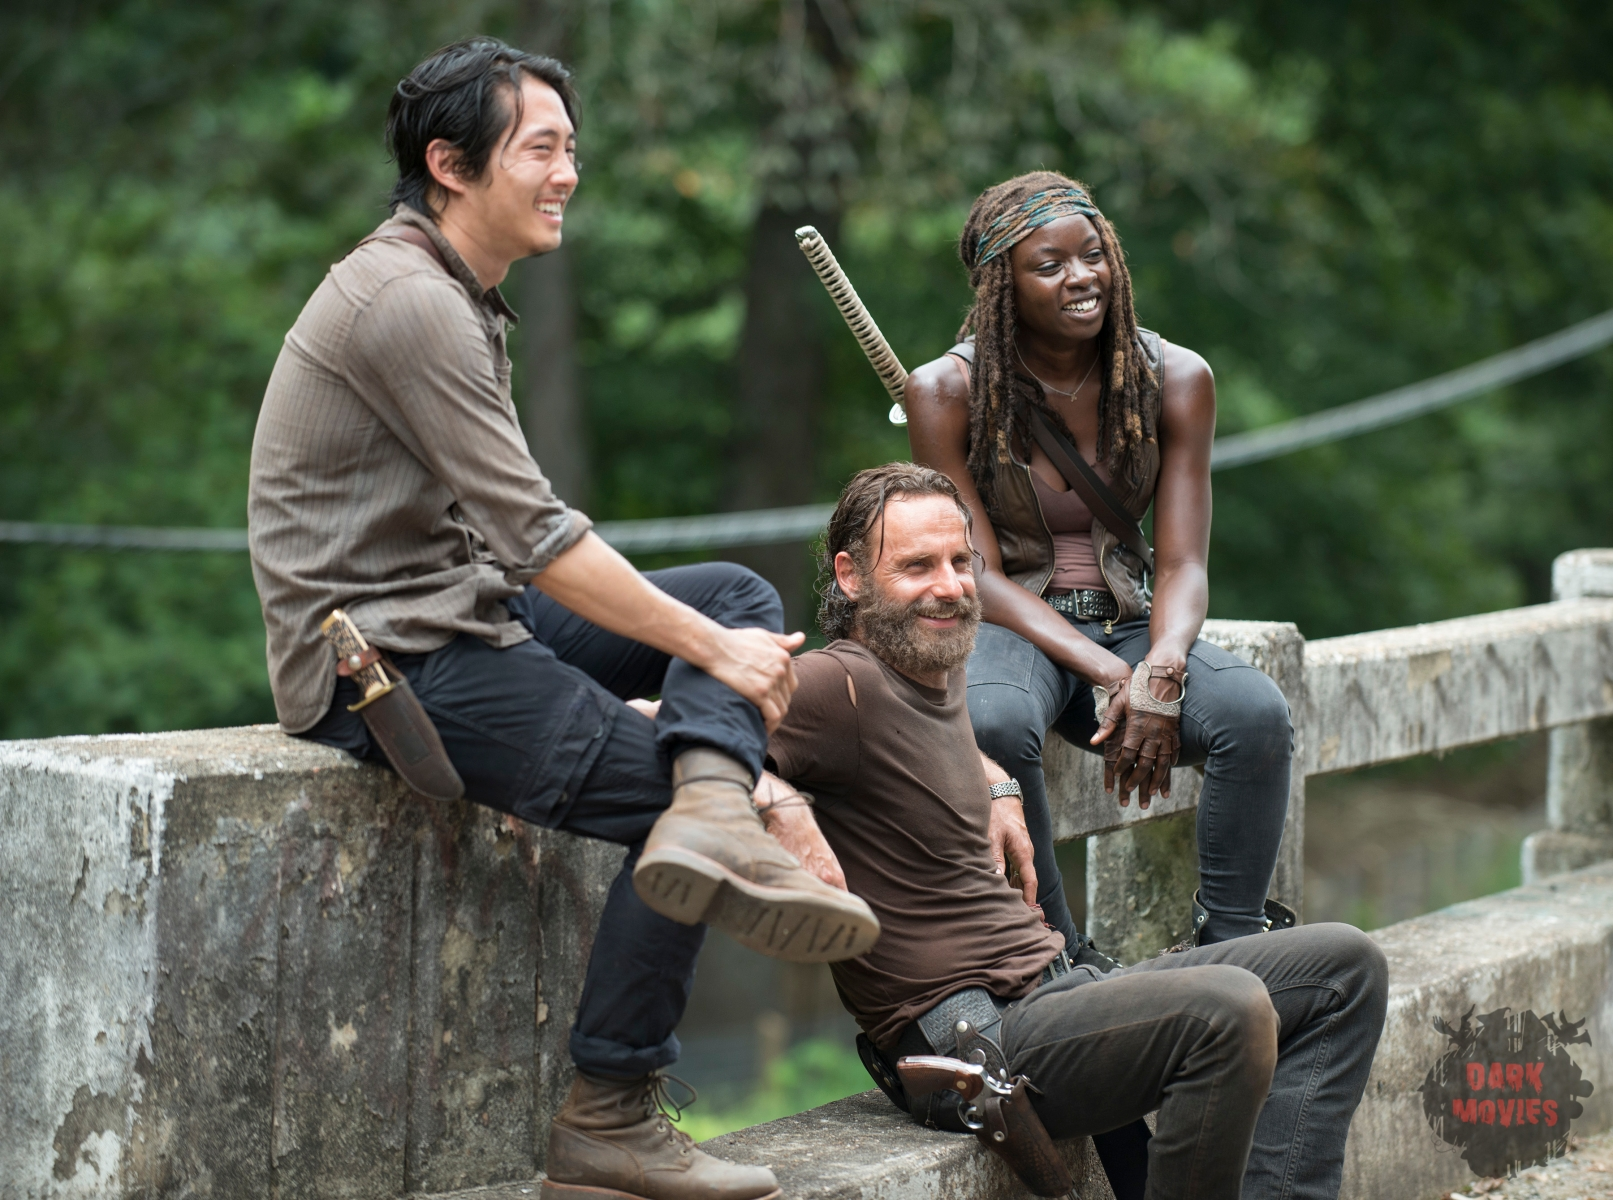 Steven Yeun, Andrew Lincoln and Danai Gurira - The Walking Dead _ Season 5, Episode 10 _ BTS - Photo Credit: Gene Page/AMC